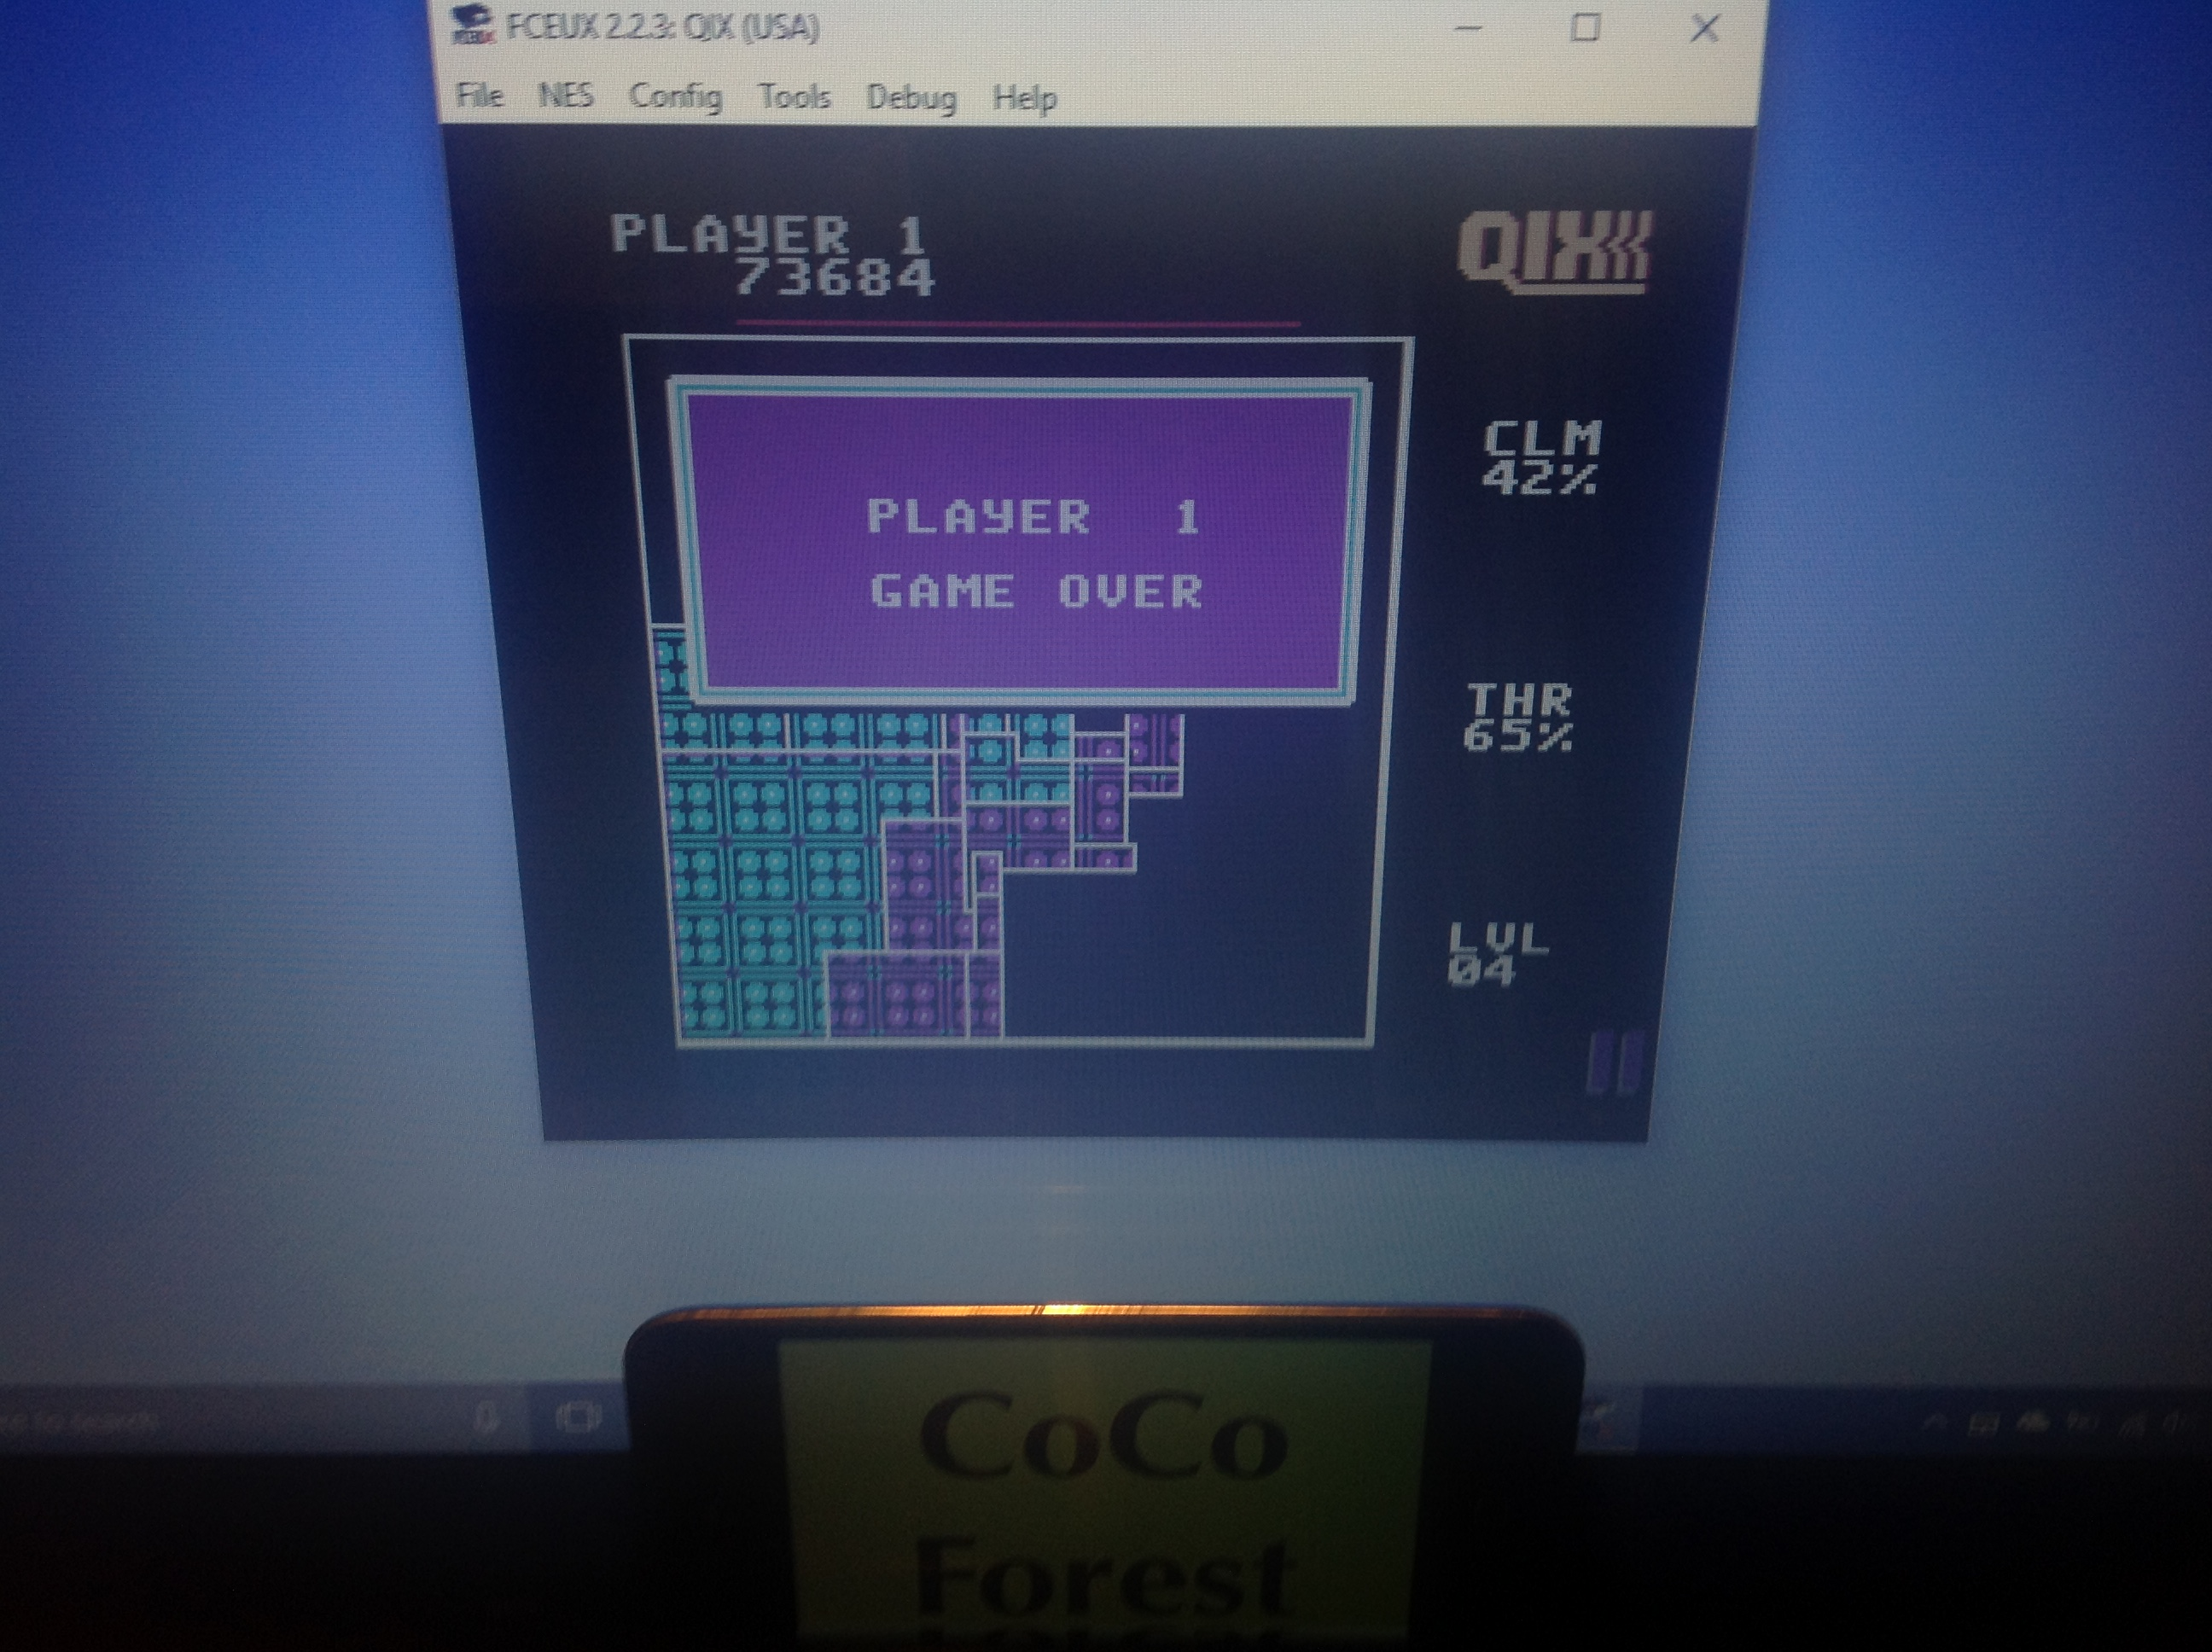 CoCoForest: Qix (NES/Famicom Emulated) 73,684 points on 2018-01-30 13:42:40